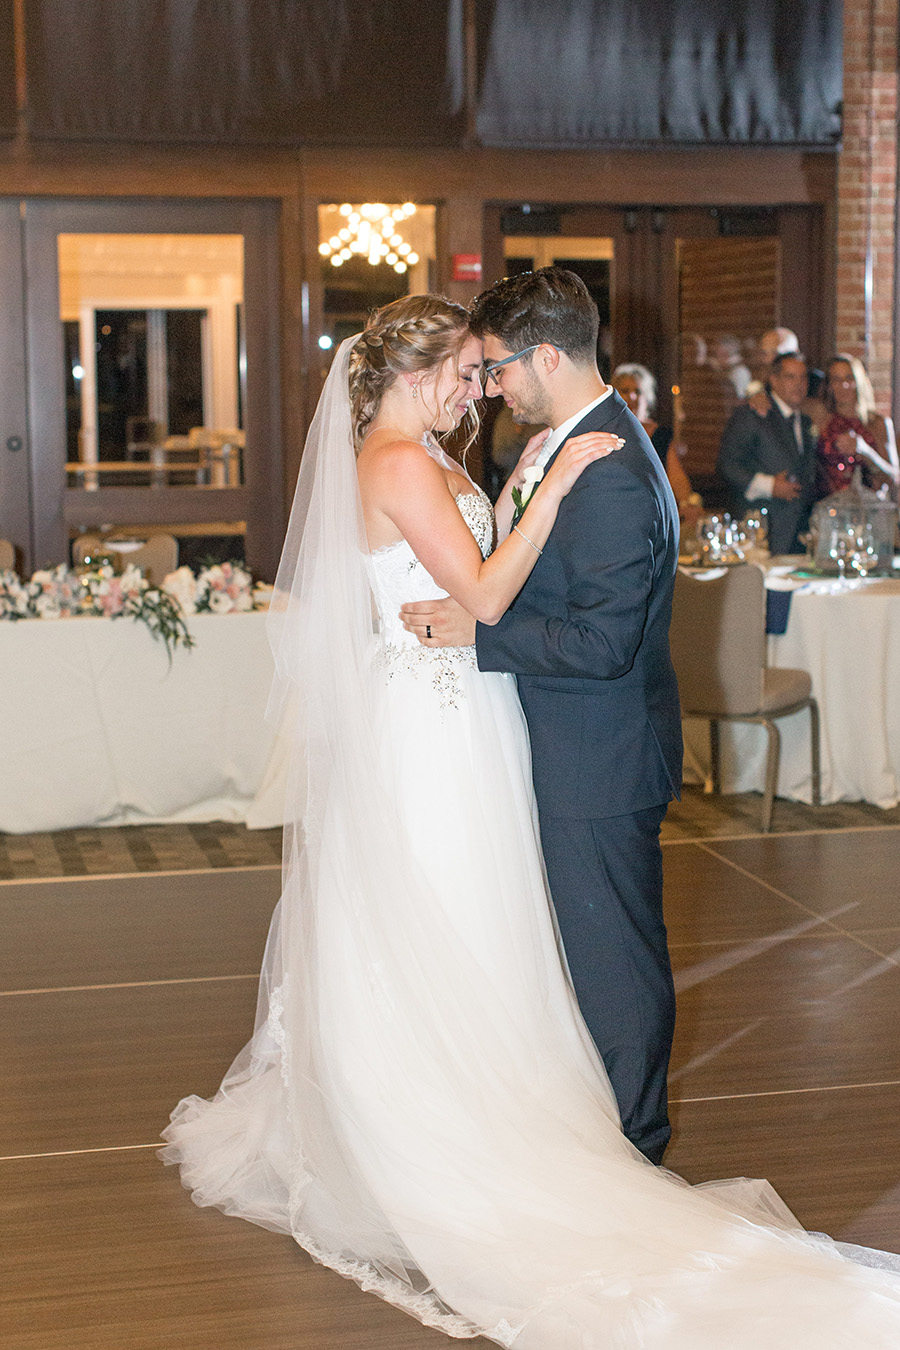 bride and groom share first dance at chubb hotel